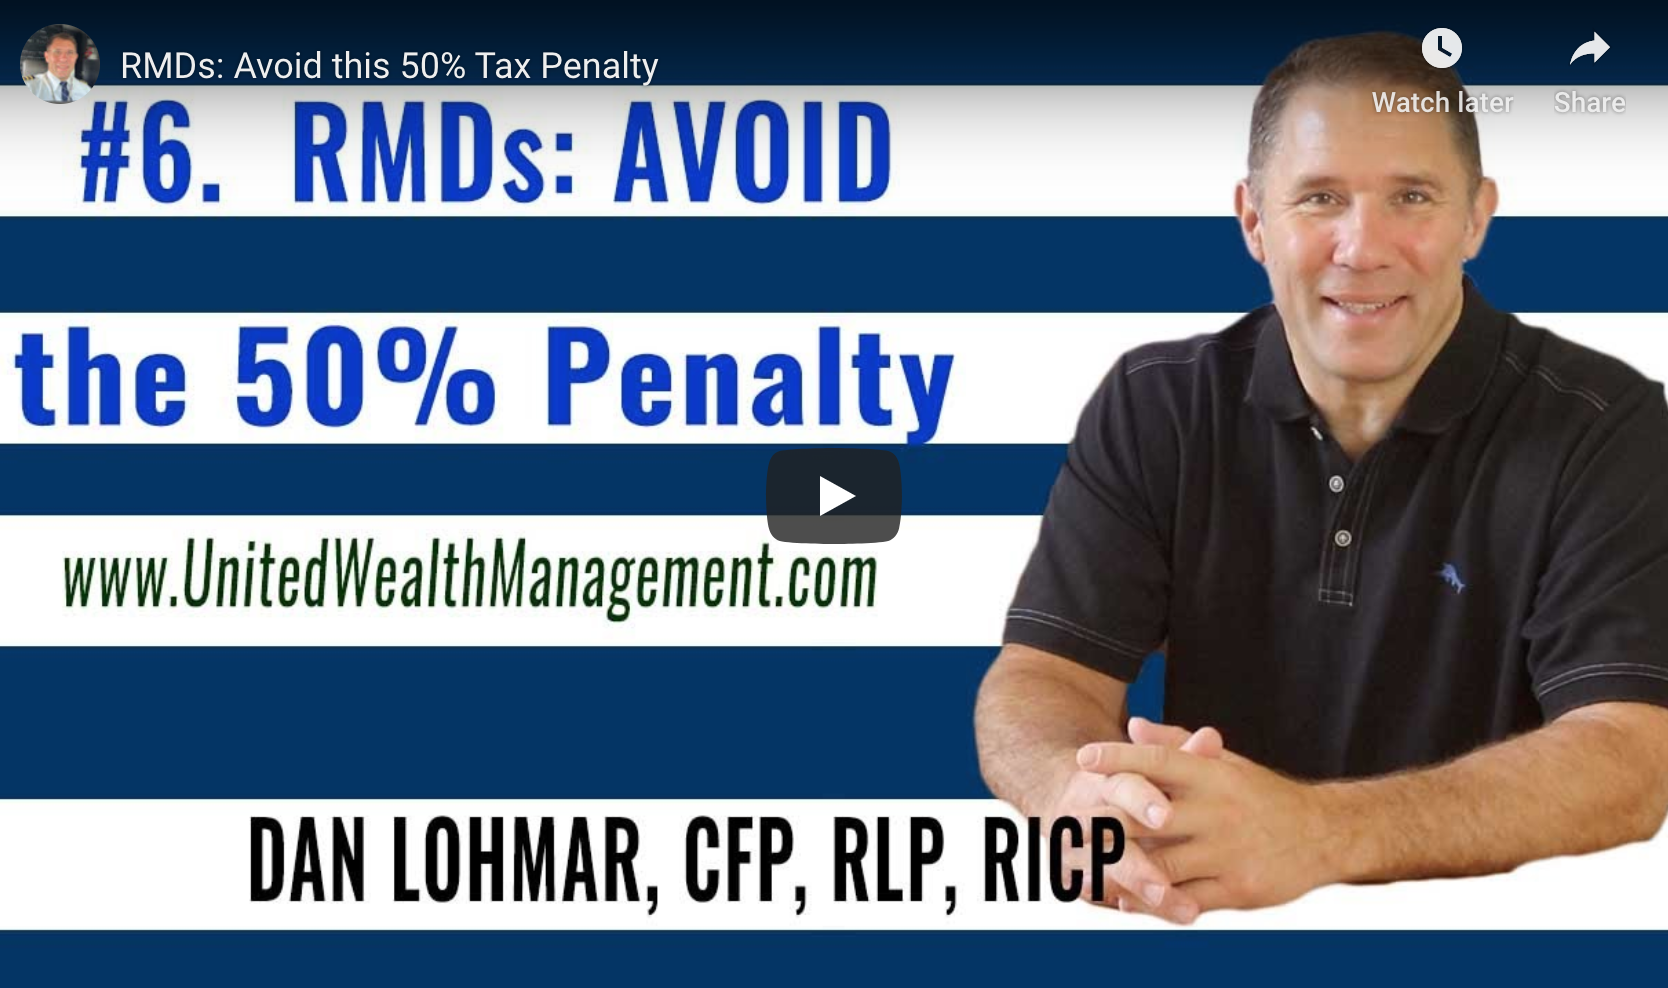 RMDs and Avoiding this 50% Penalty Thumbnail